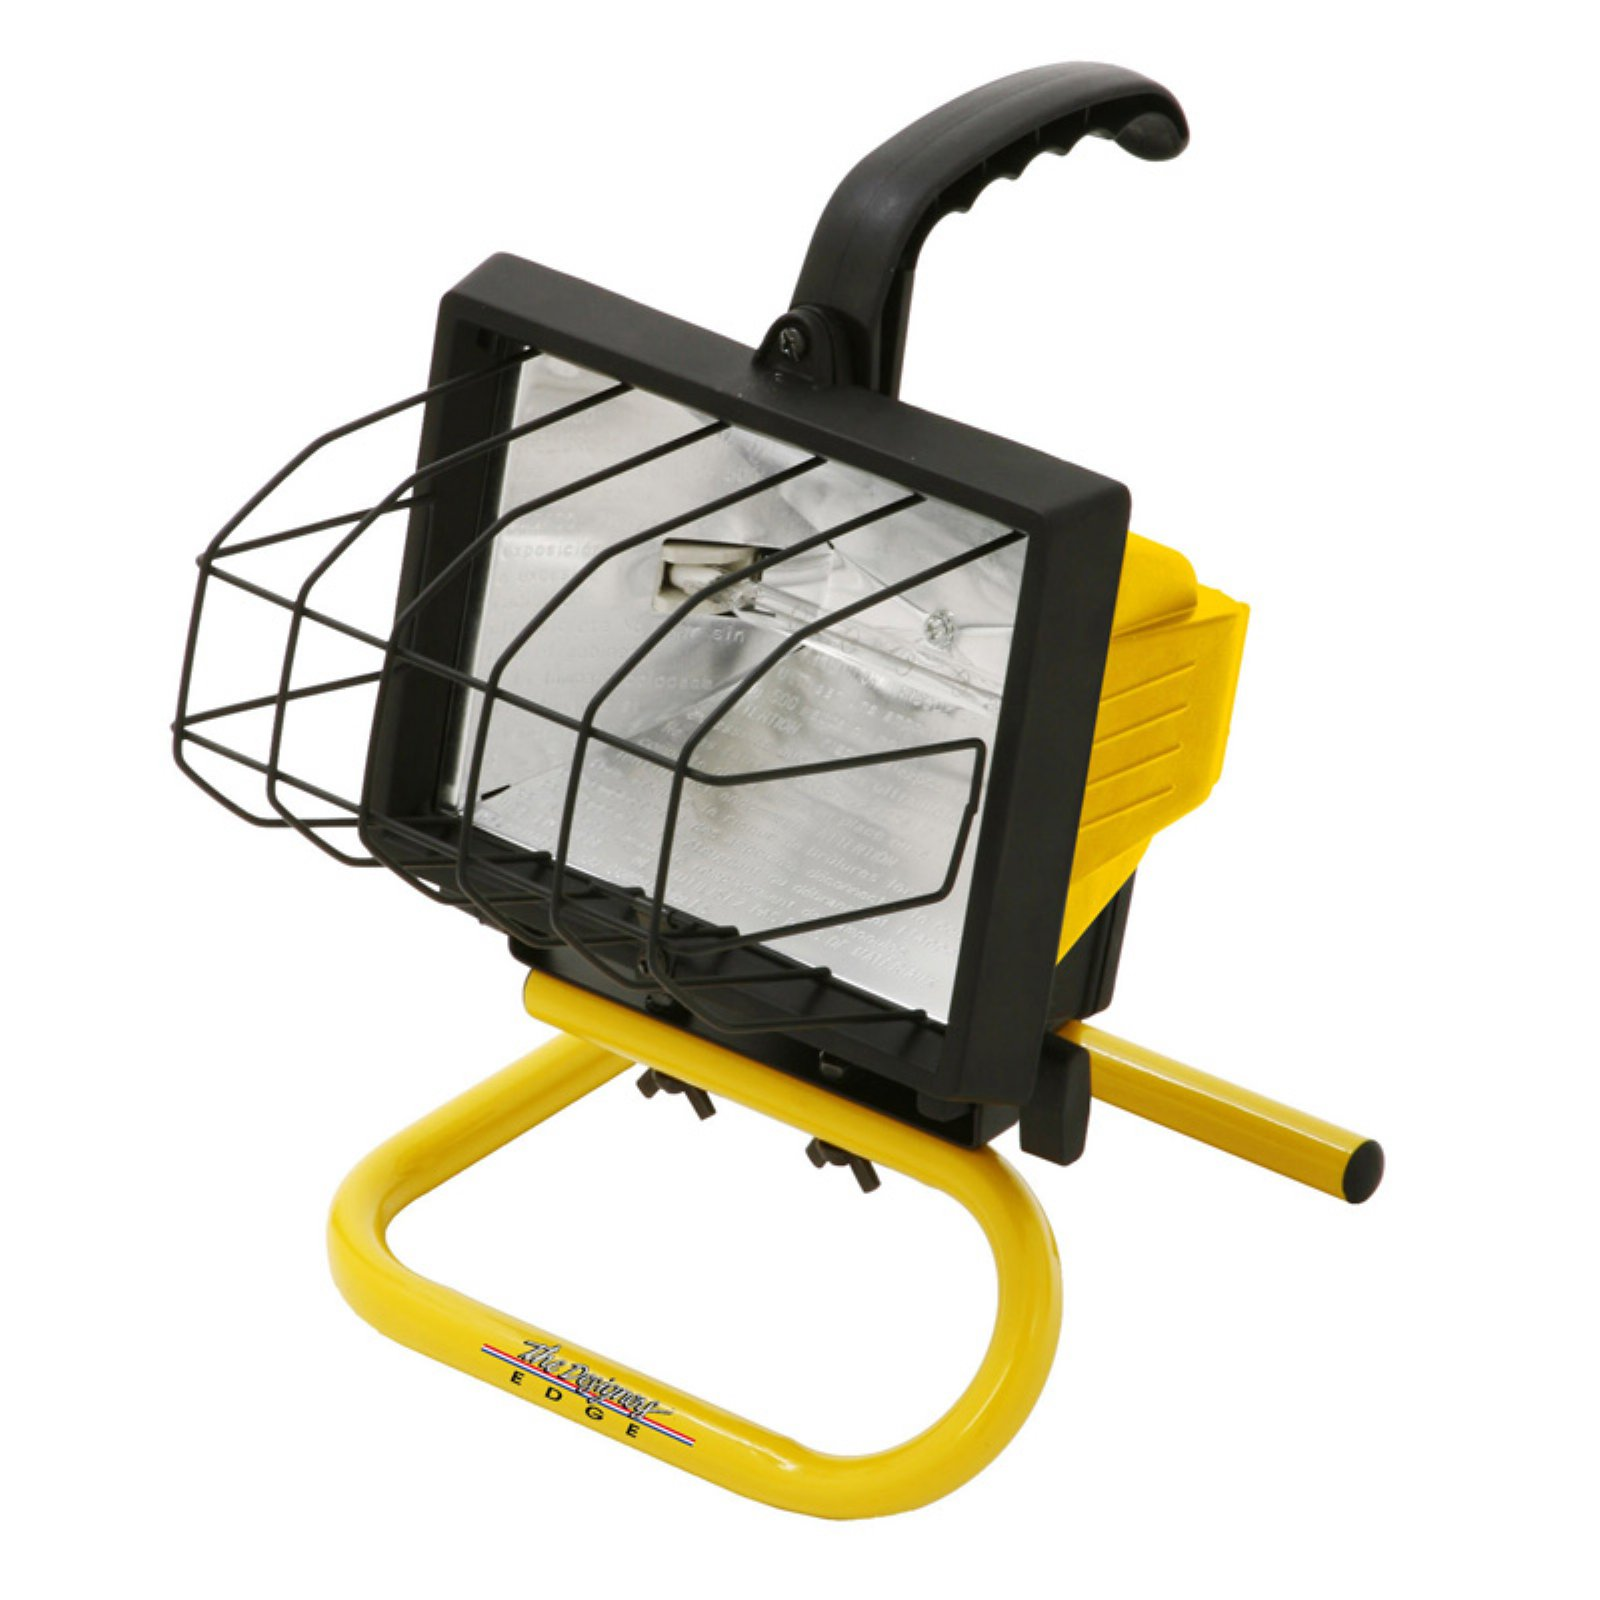 Designers Edge L20 Portable Handheld Work Light, Yellow, 500W